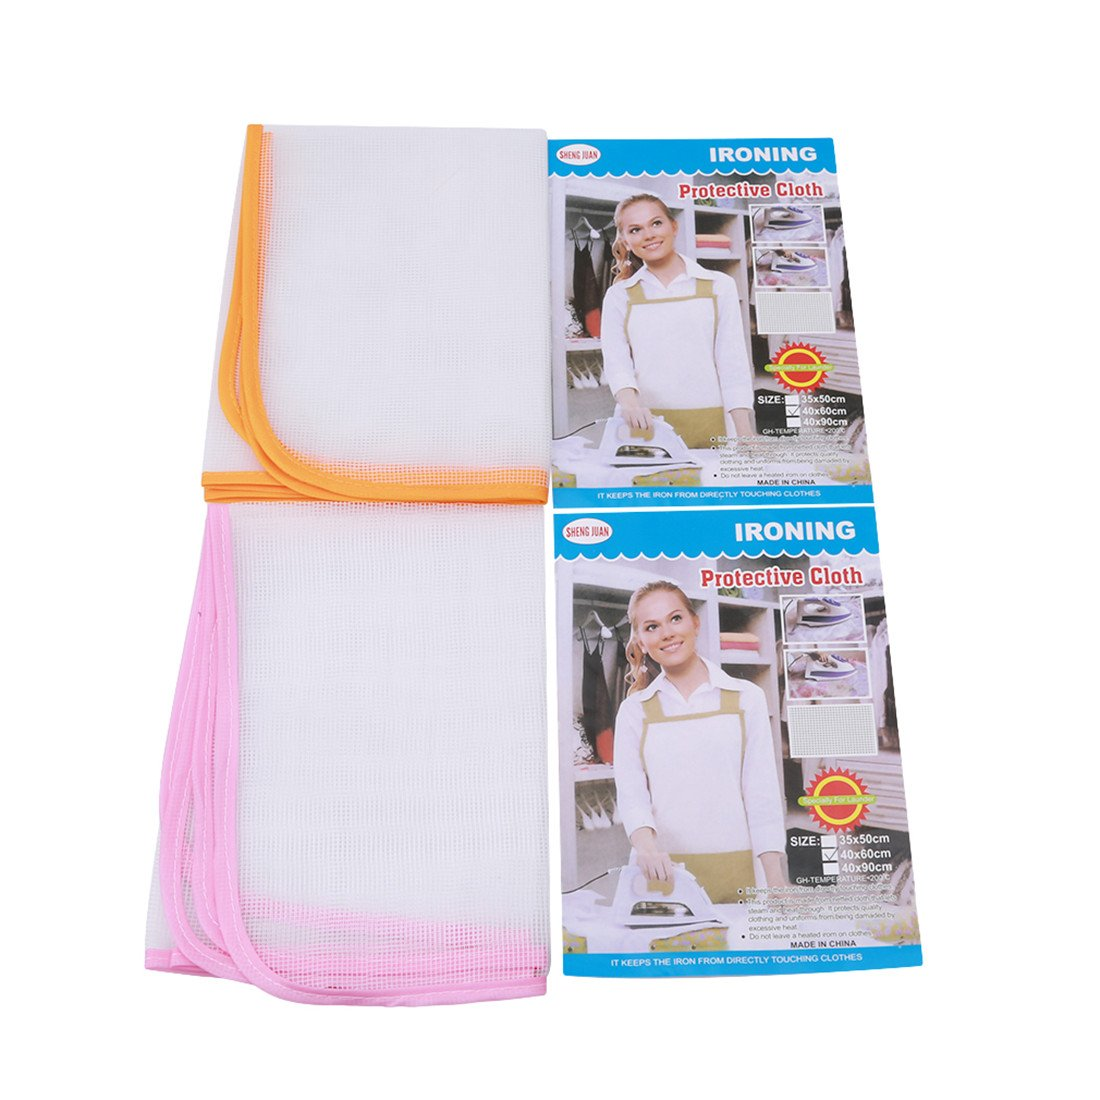 VWH Clothes Ironing Pad Protective Insulation Against Hot Household Ironing Mattress